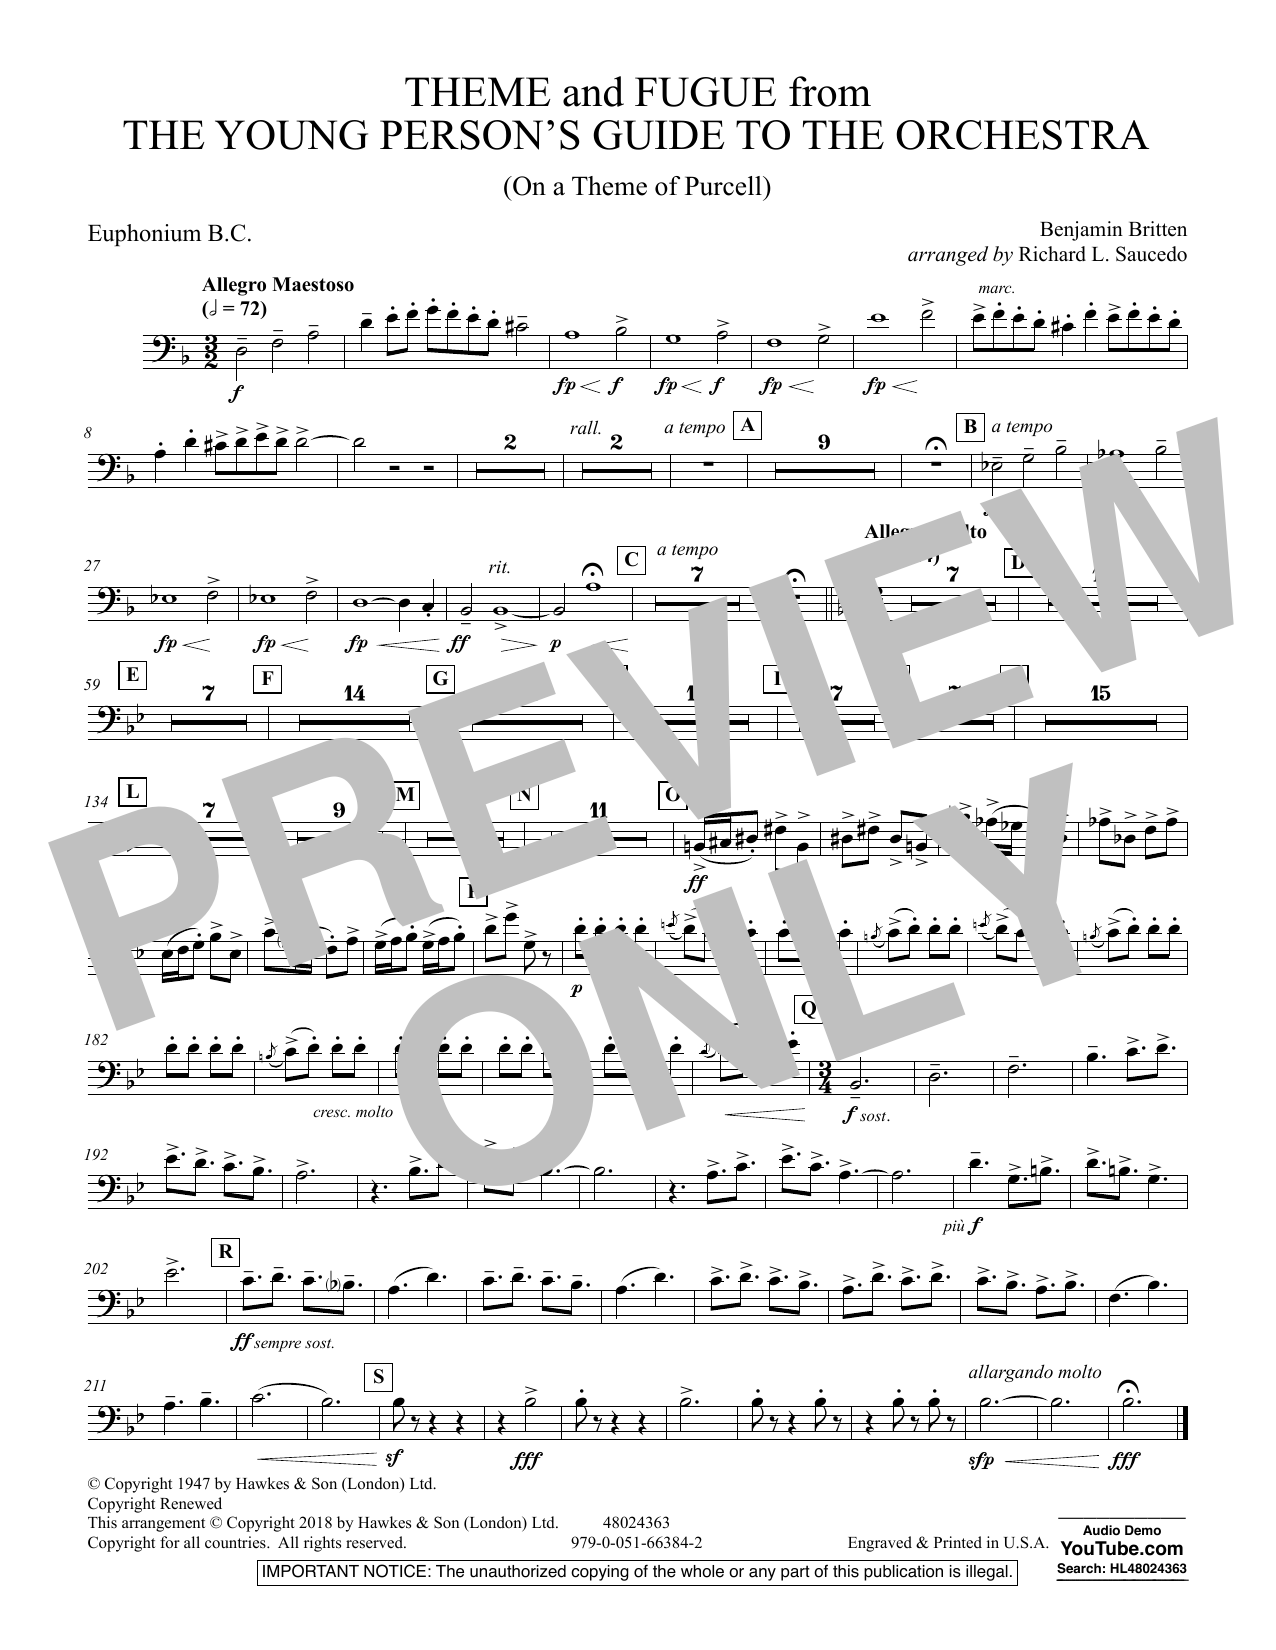 Benjamin Britten Theme and Fugue from The Young Person's Guide to the Orchestra - Euphonium in Bass Clef sheet music preview music notes and score for Concert Band including 1 page(s)